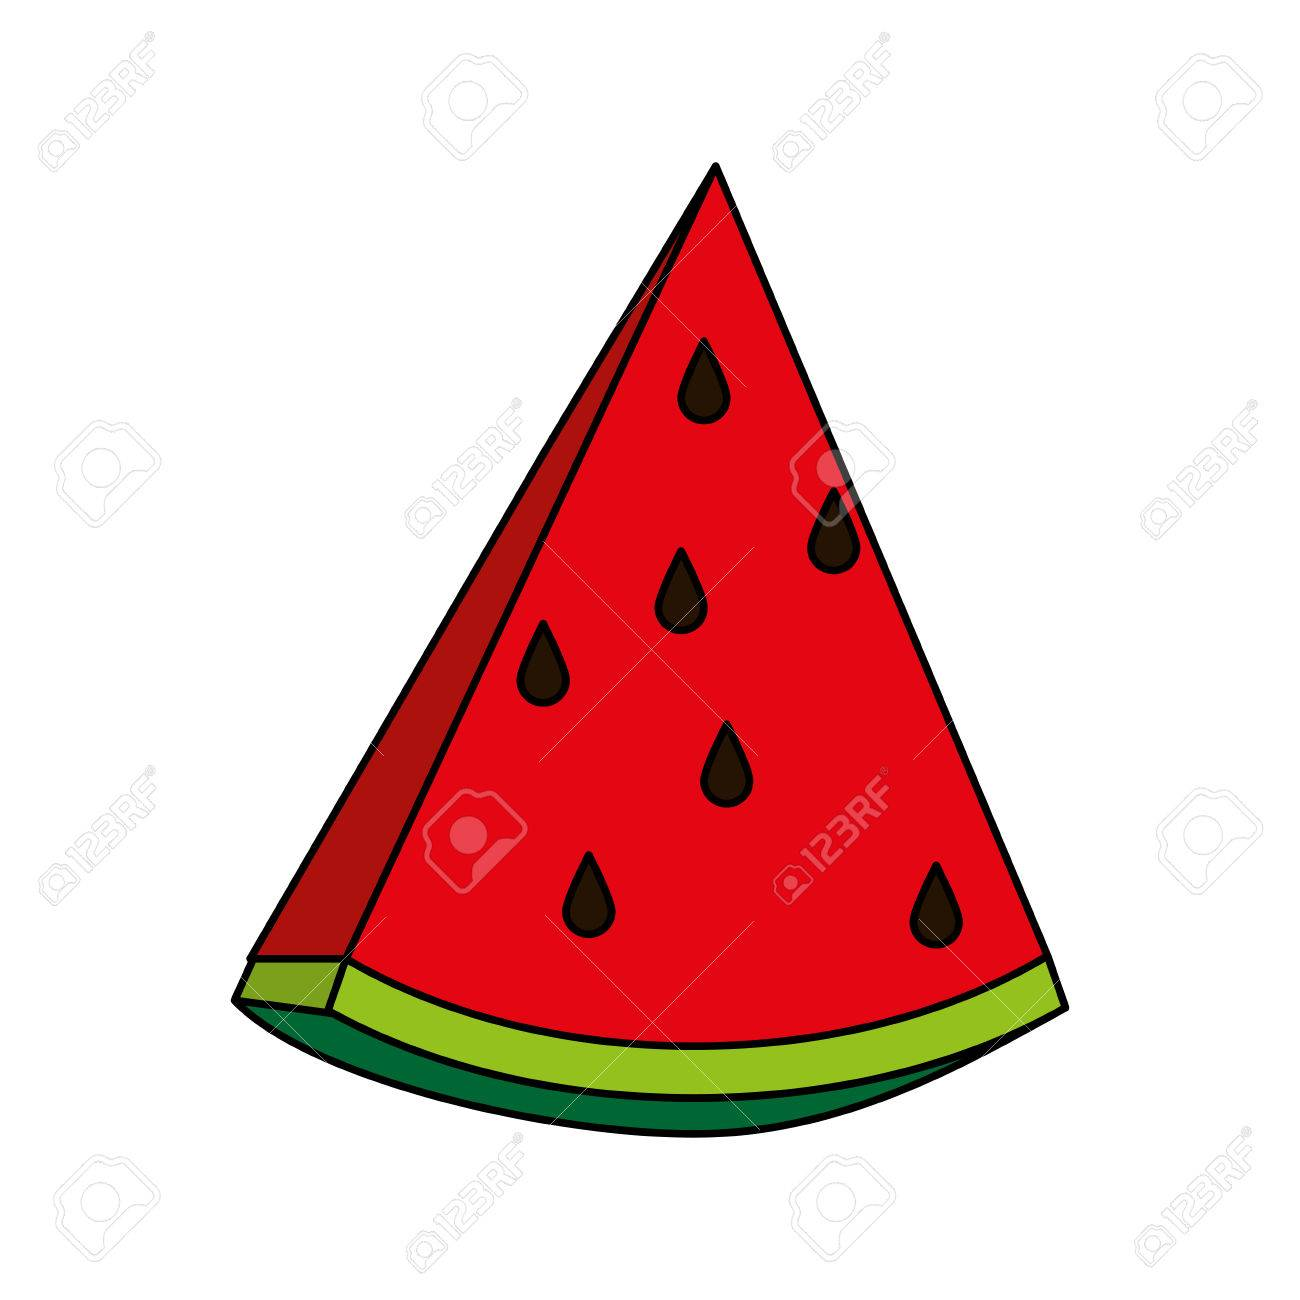 sweet fruit watermelon vector icon illustration design graphic rh 123rf com watermelon vector free watermelon vector download